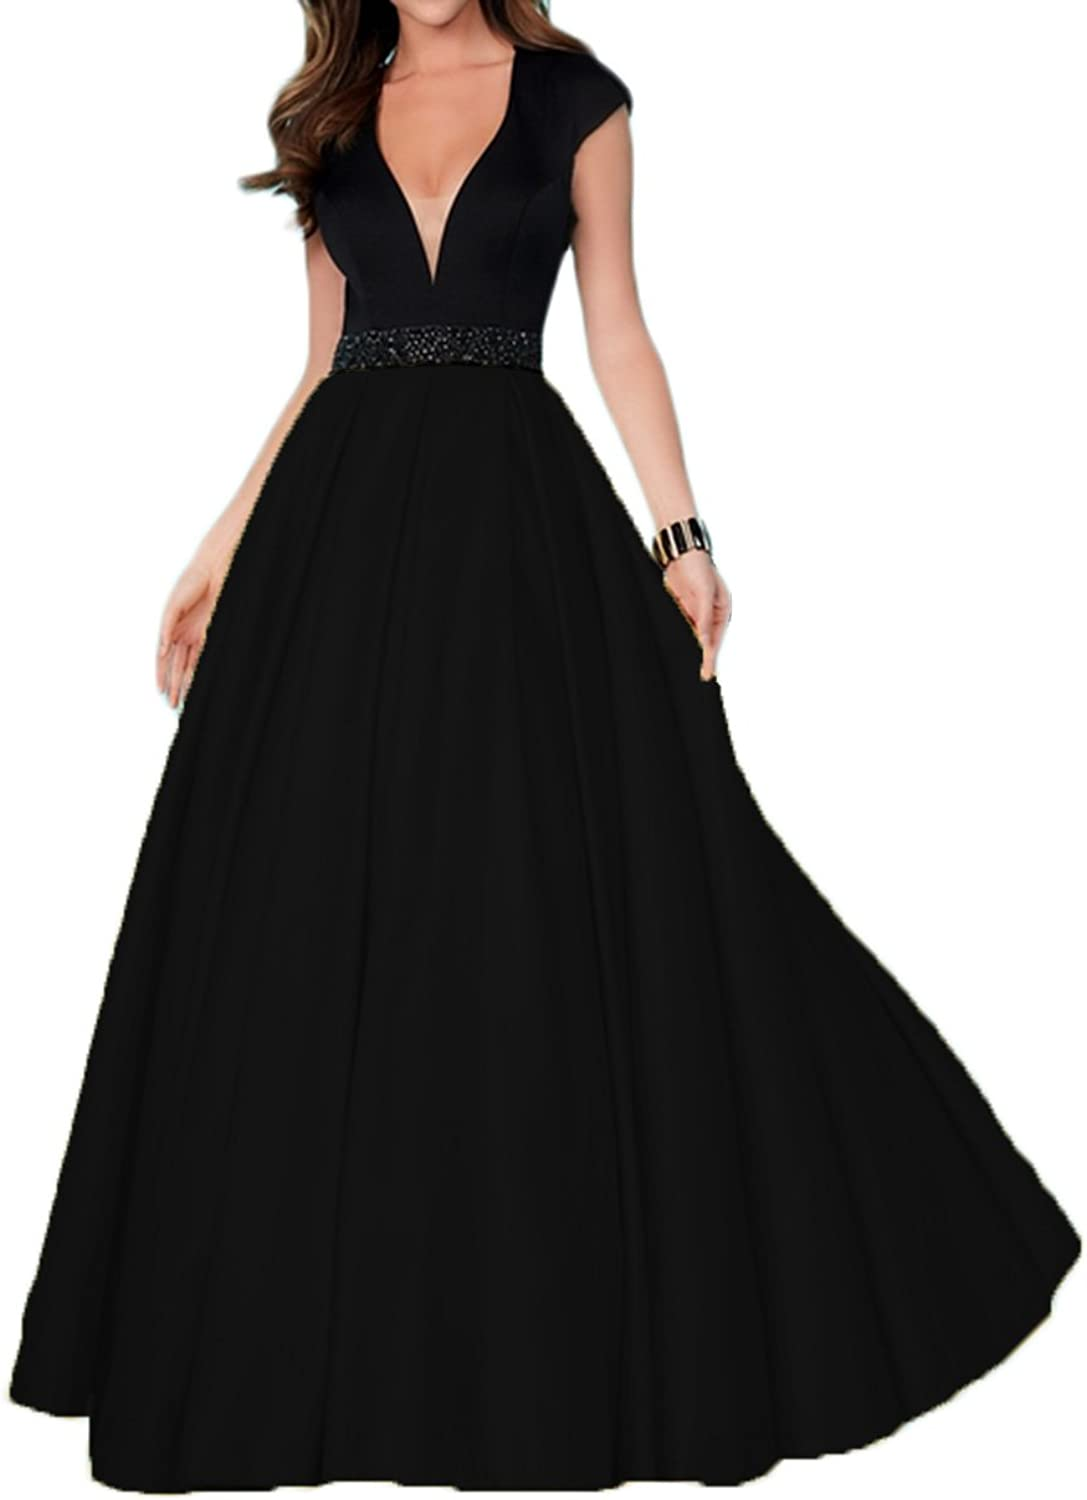 Alilith.Z Sexy V Neck Open Back Prom Dresses A Line Beaded Long Formal Evening Party Dresses for Women with Pockets